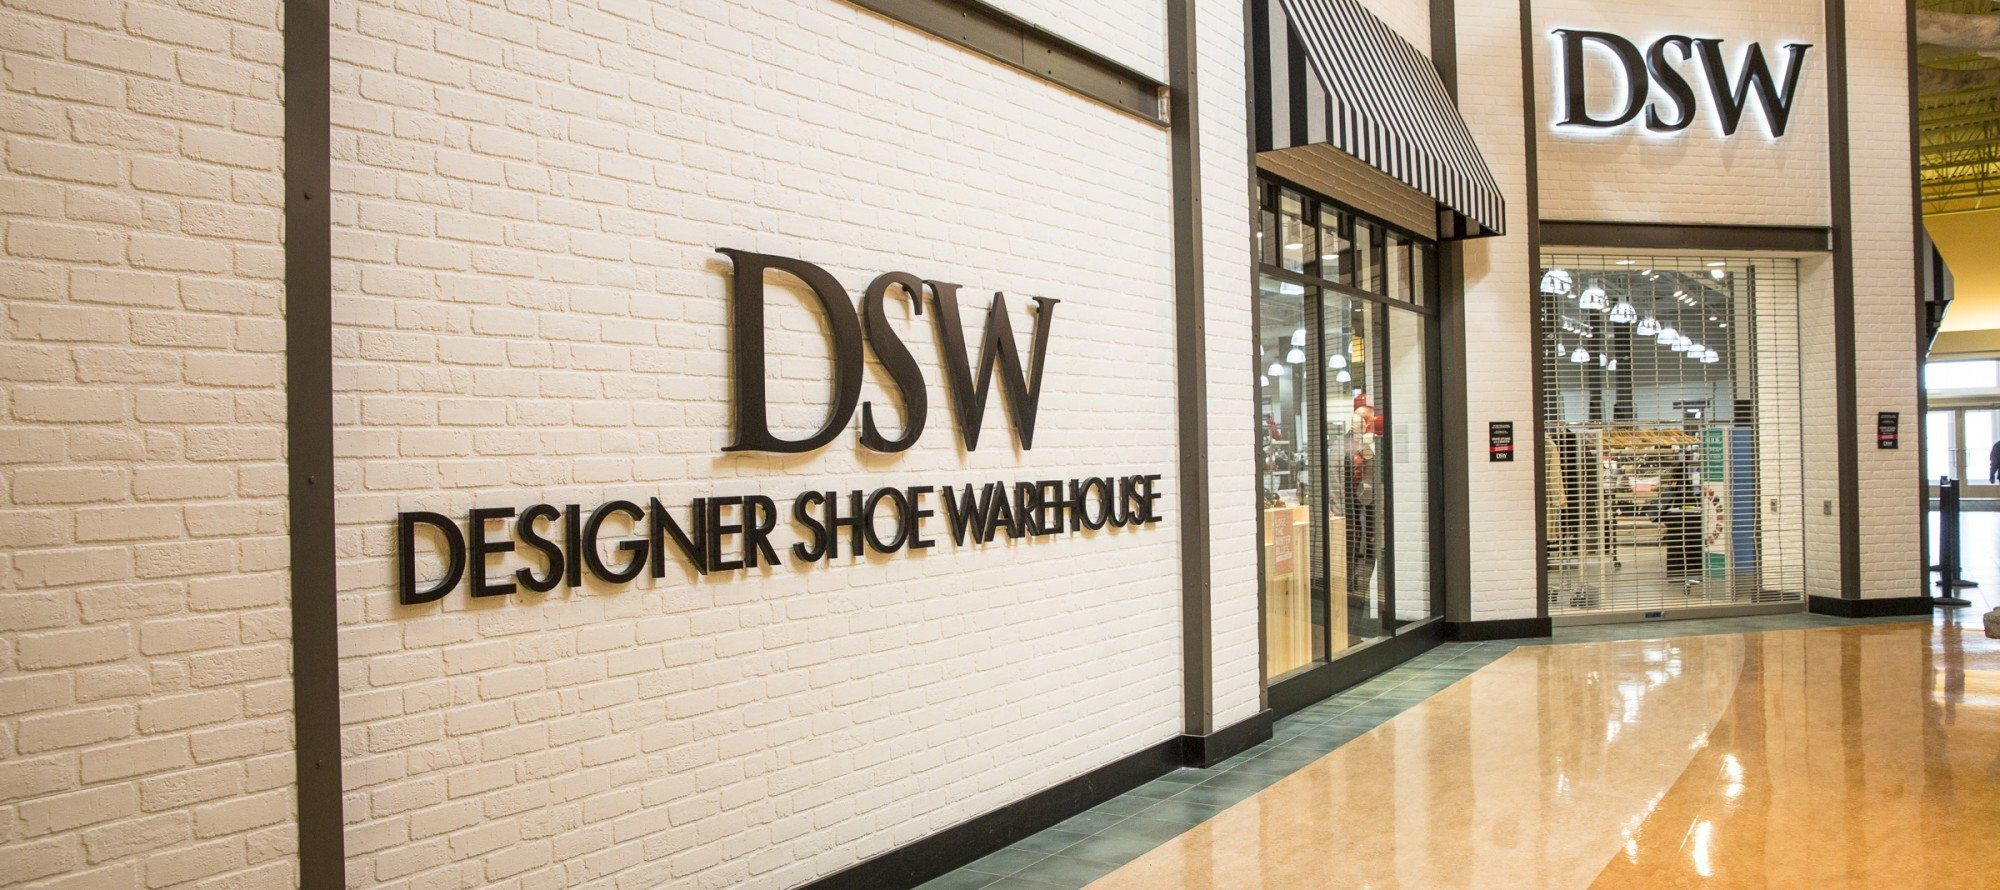 High (heel) alert—Town Shoes Limited announces DSW Designer Shoe Warehouse provincial expansion in 2016 (and YES! We're getting one!)